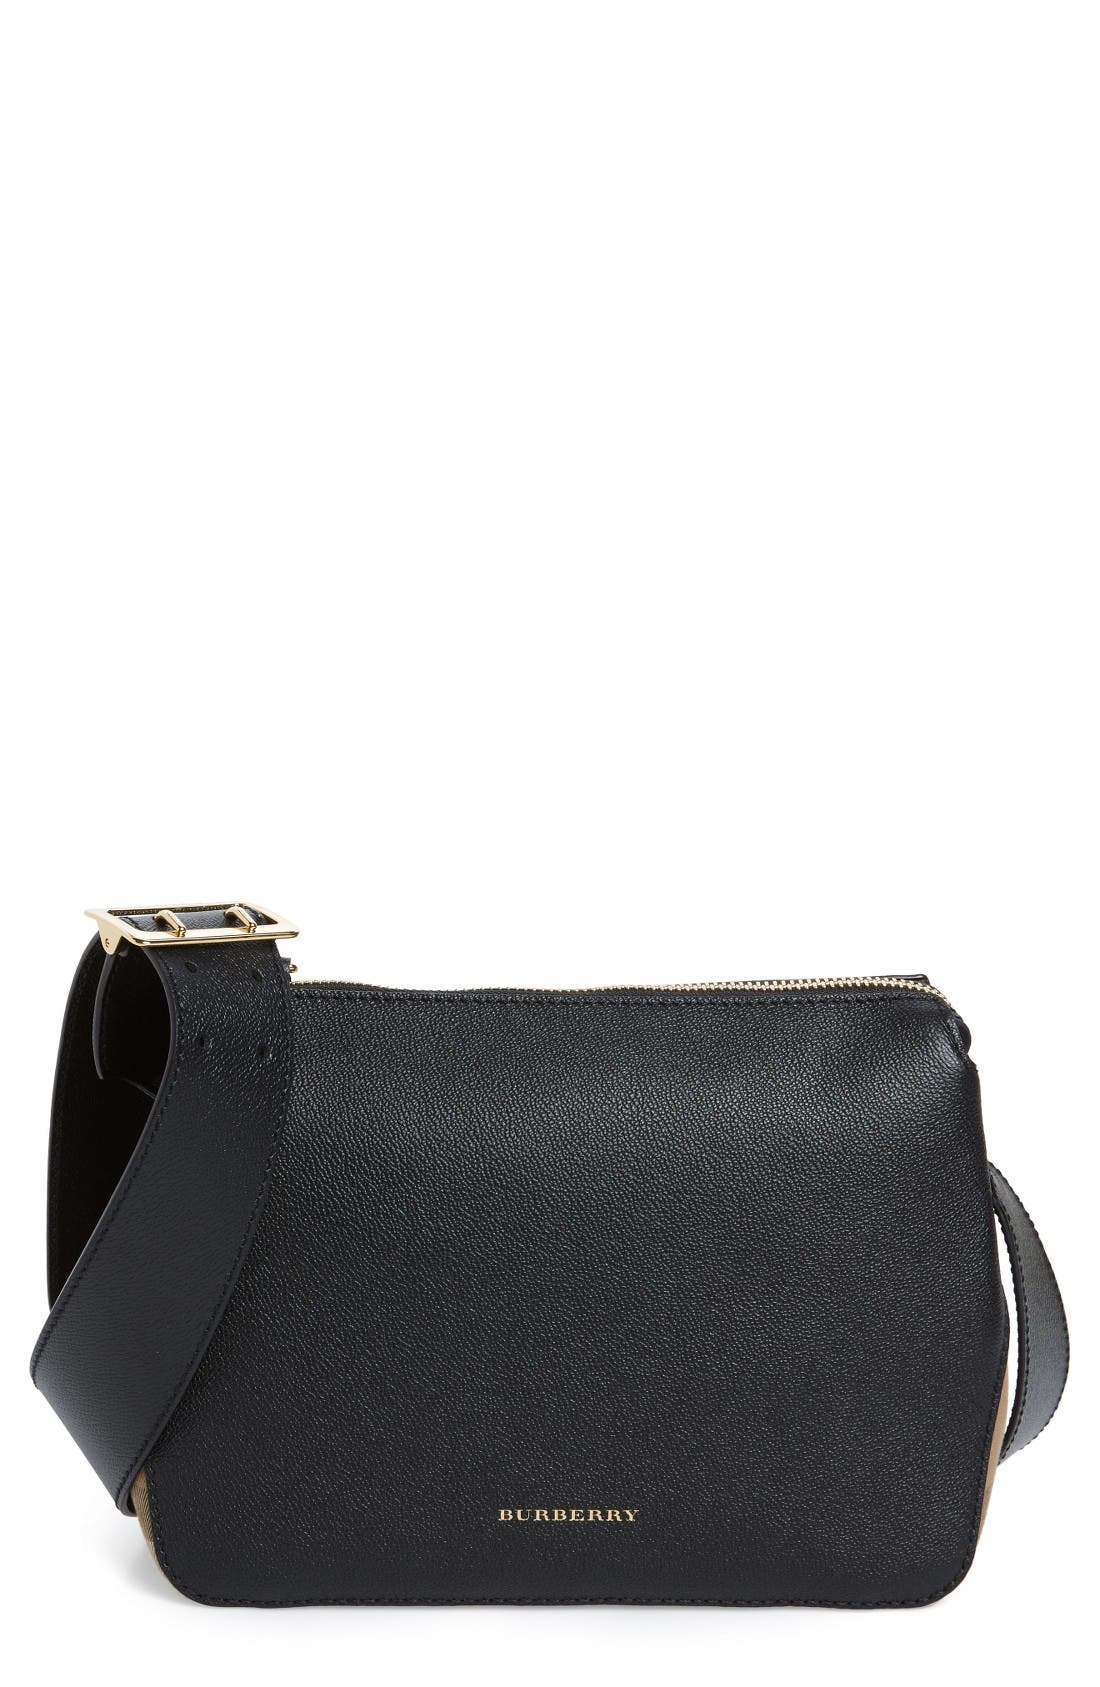 Alternate Image 1 Selected - Burberry Helmsley House Check Leather Crossbody Bag